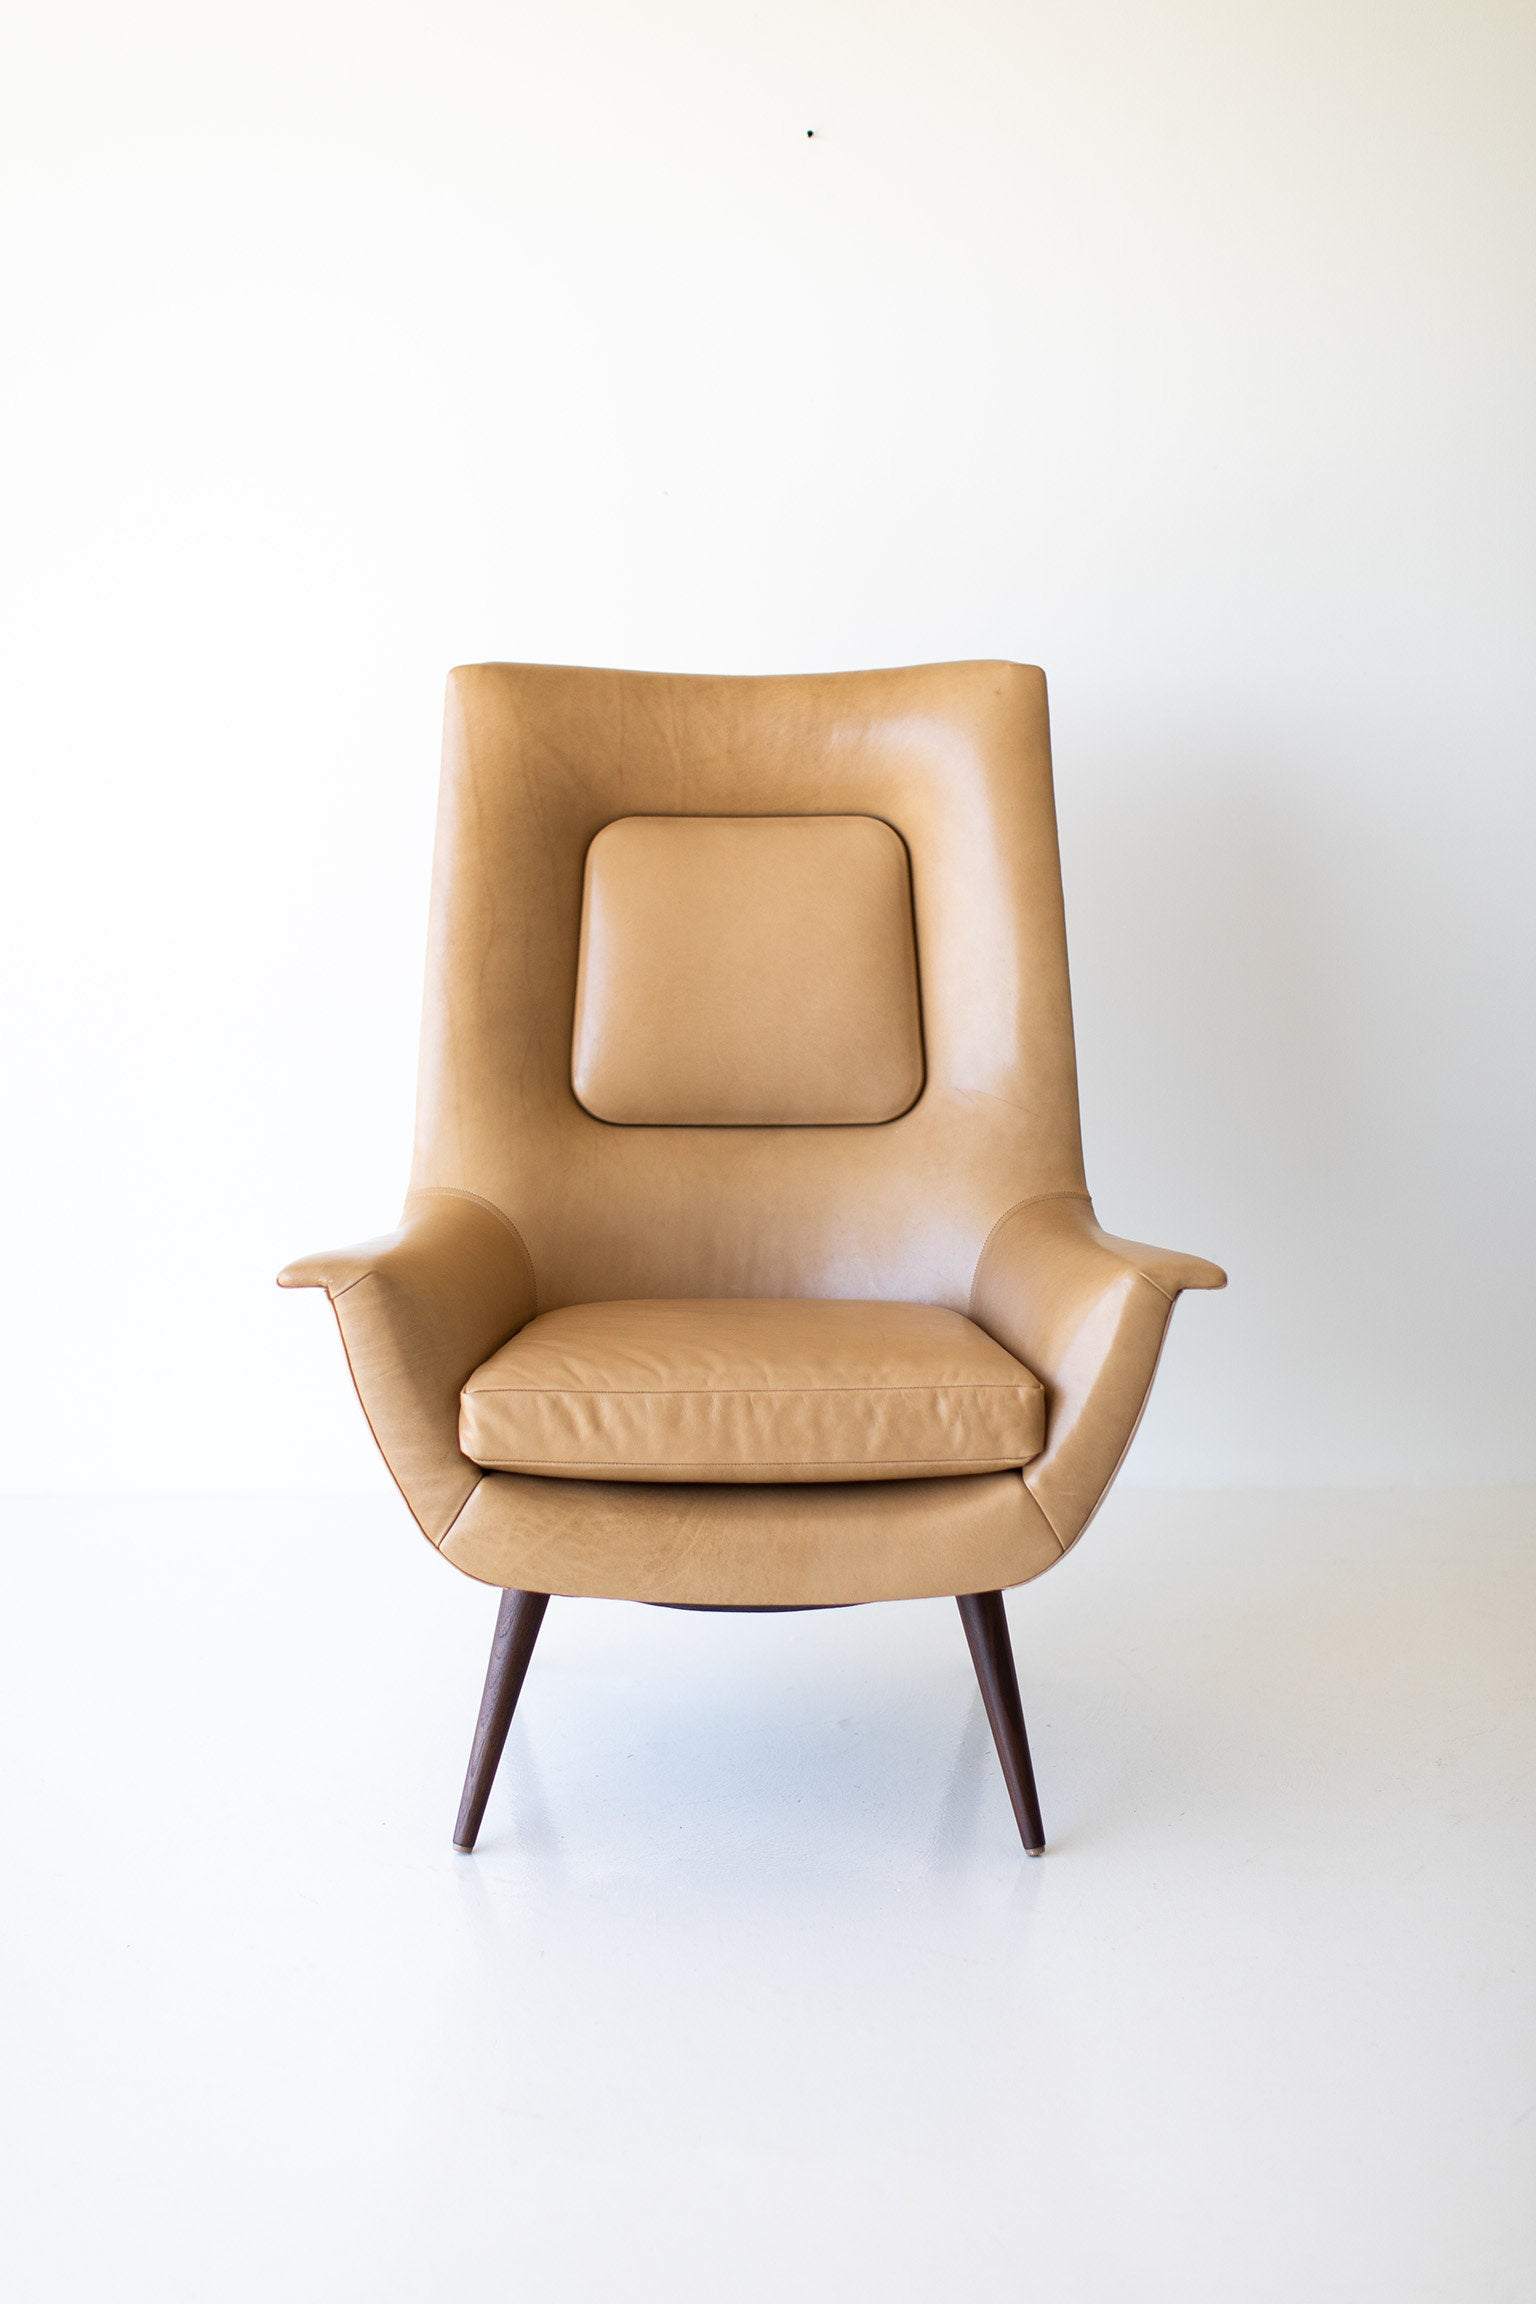 lawrence-peabody-chair-08